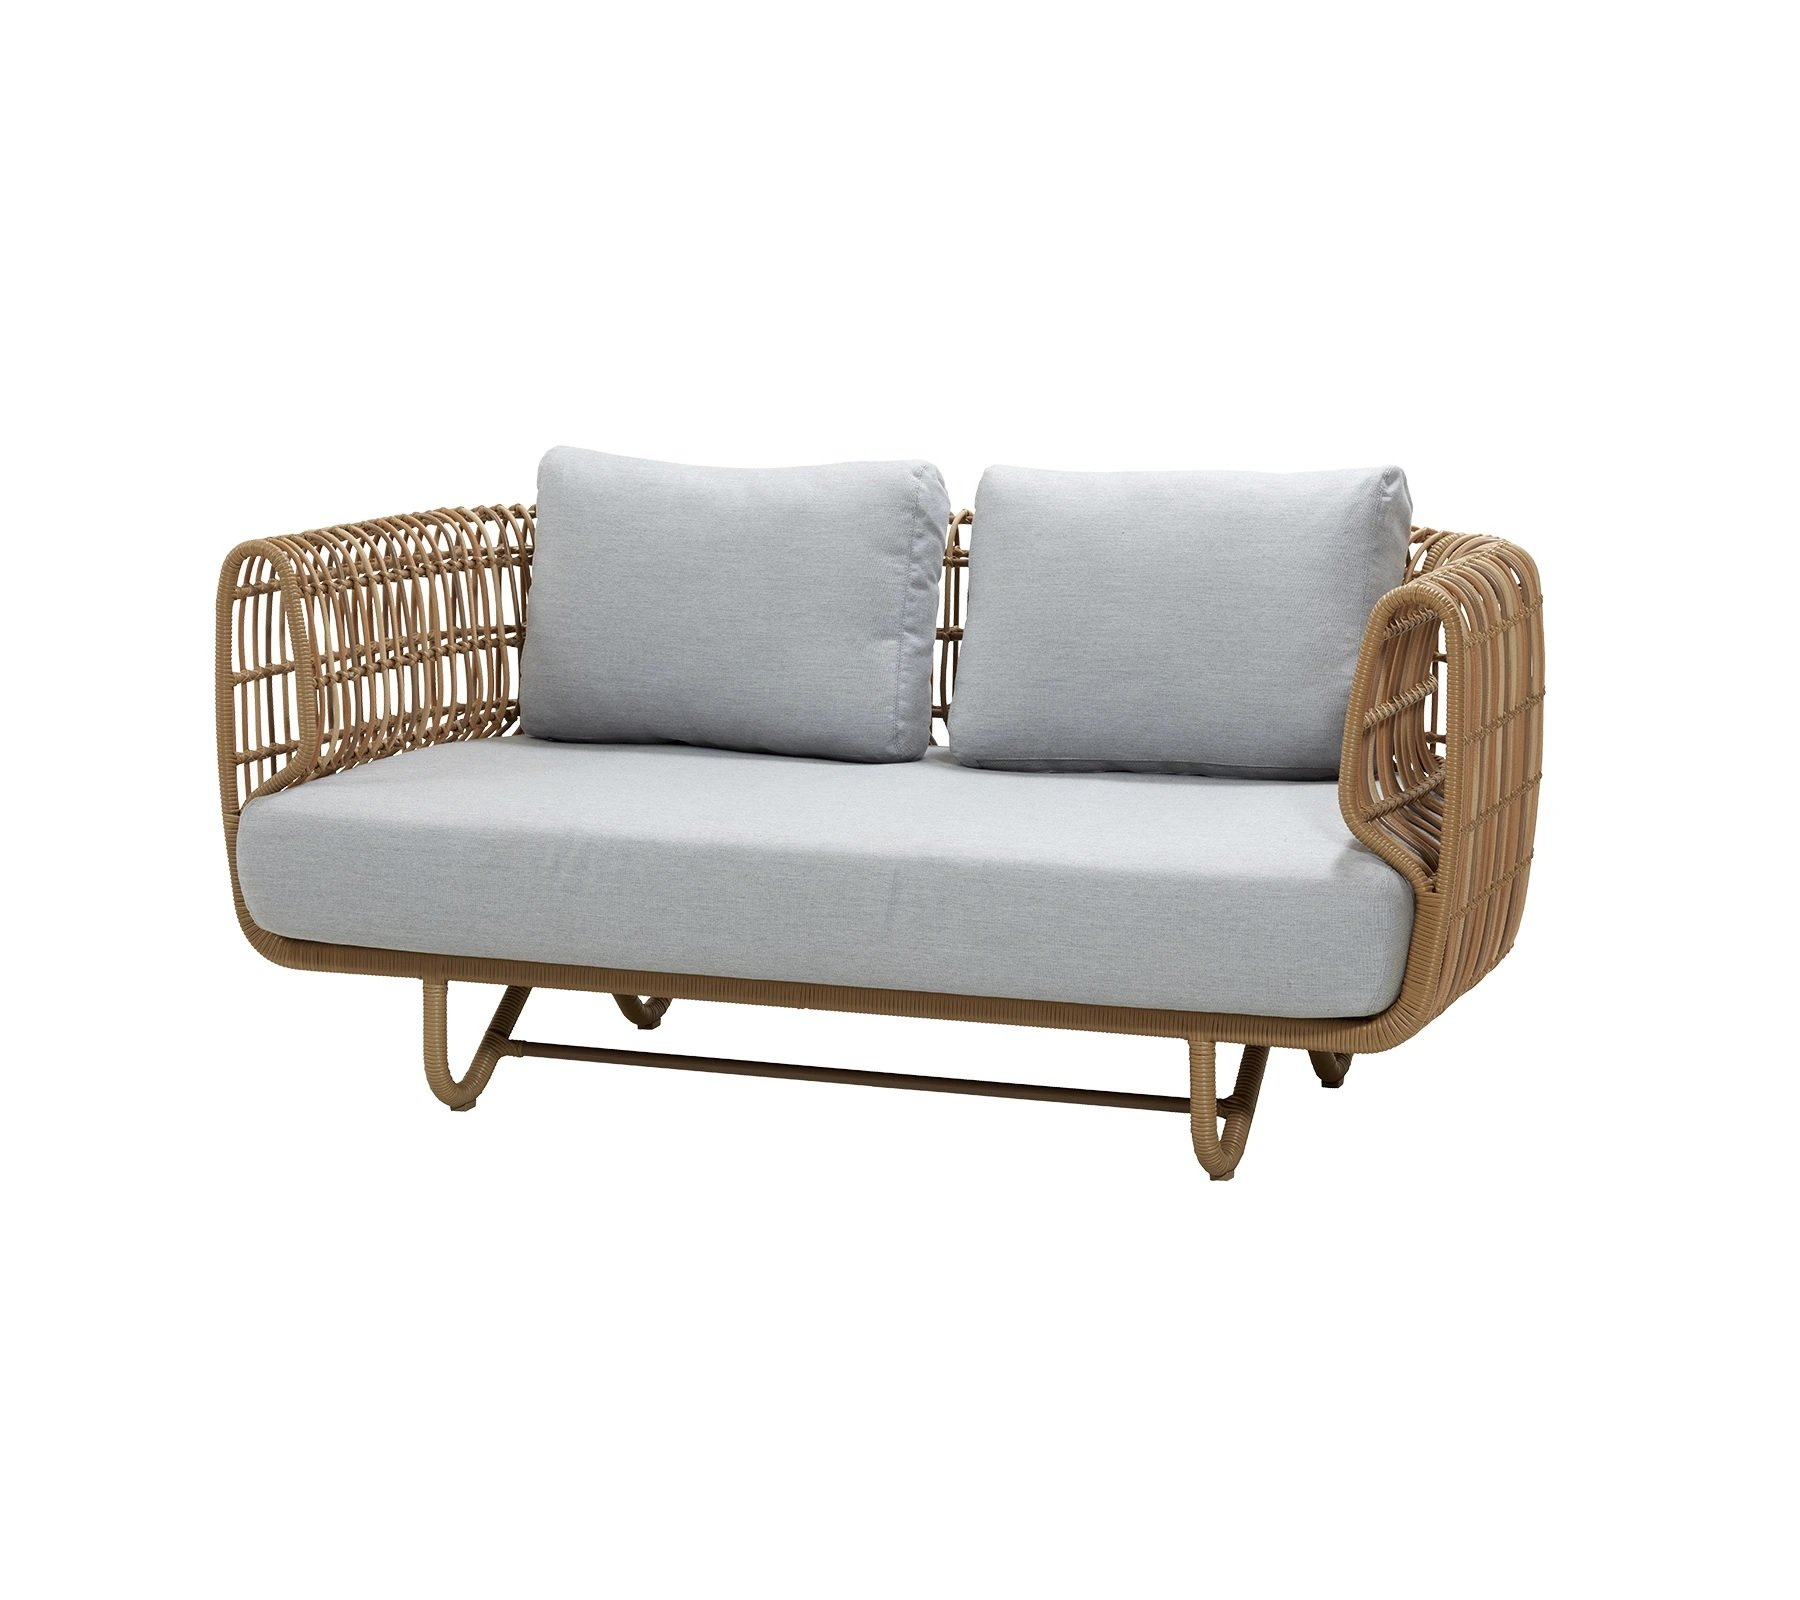 Nest 2-Seater Sofa from Cane-line